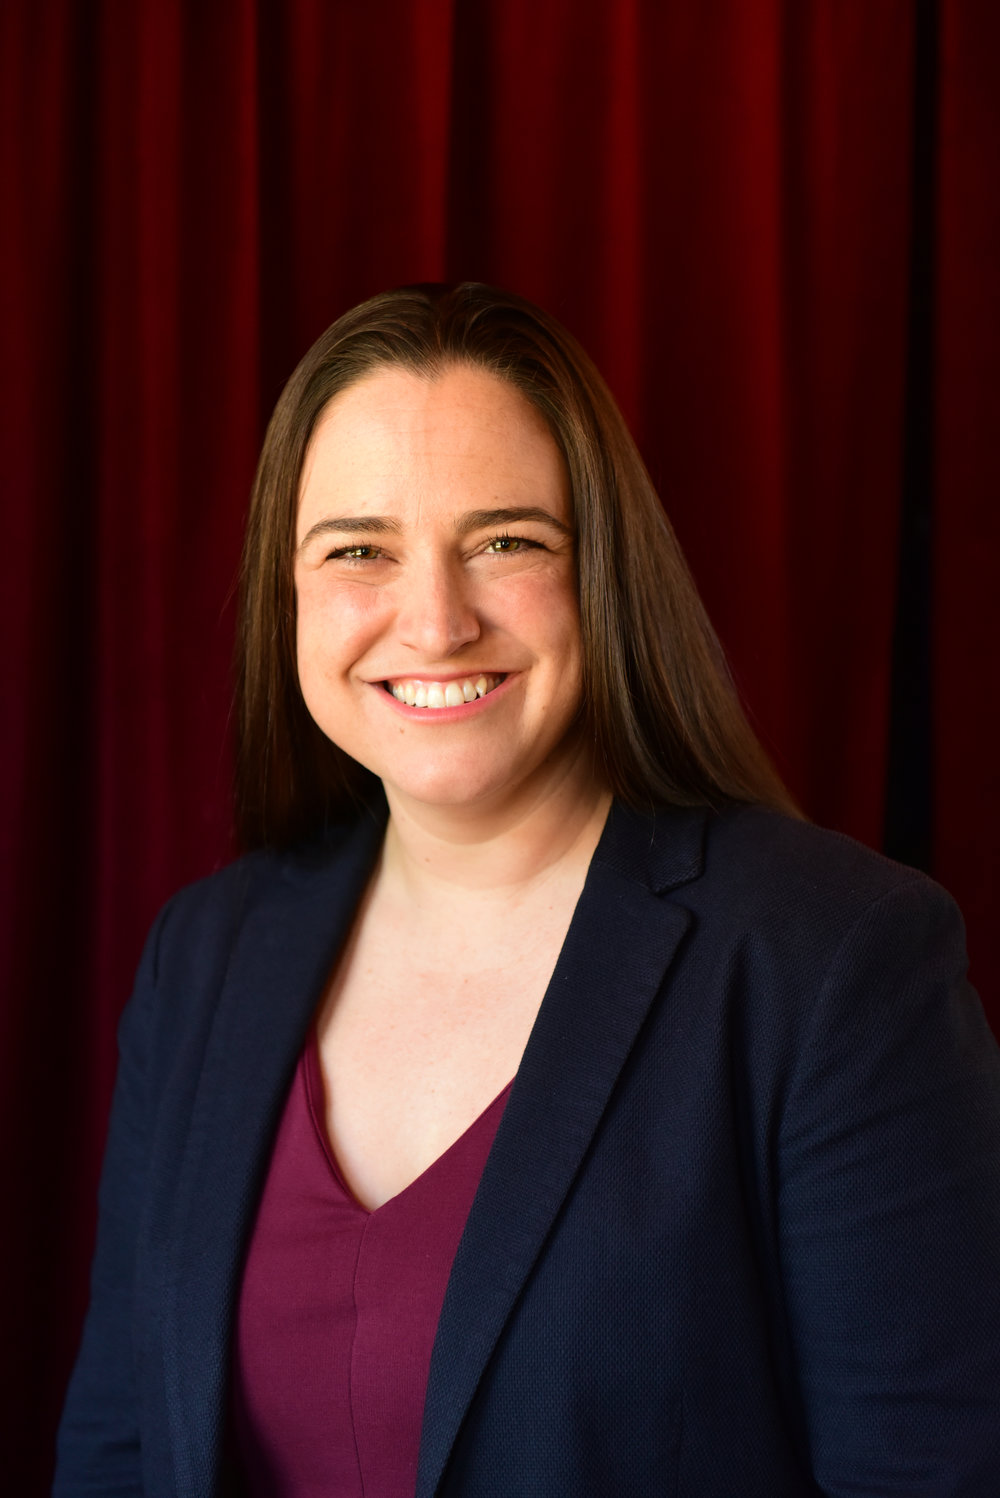 Ivy Pool Candidate for Town Board, Democratic Party